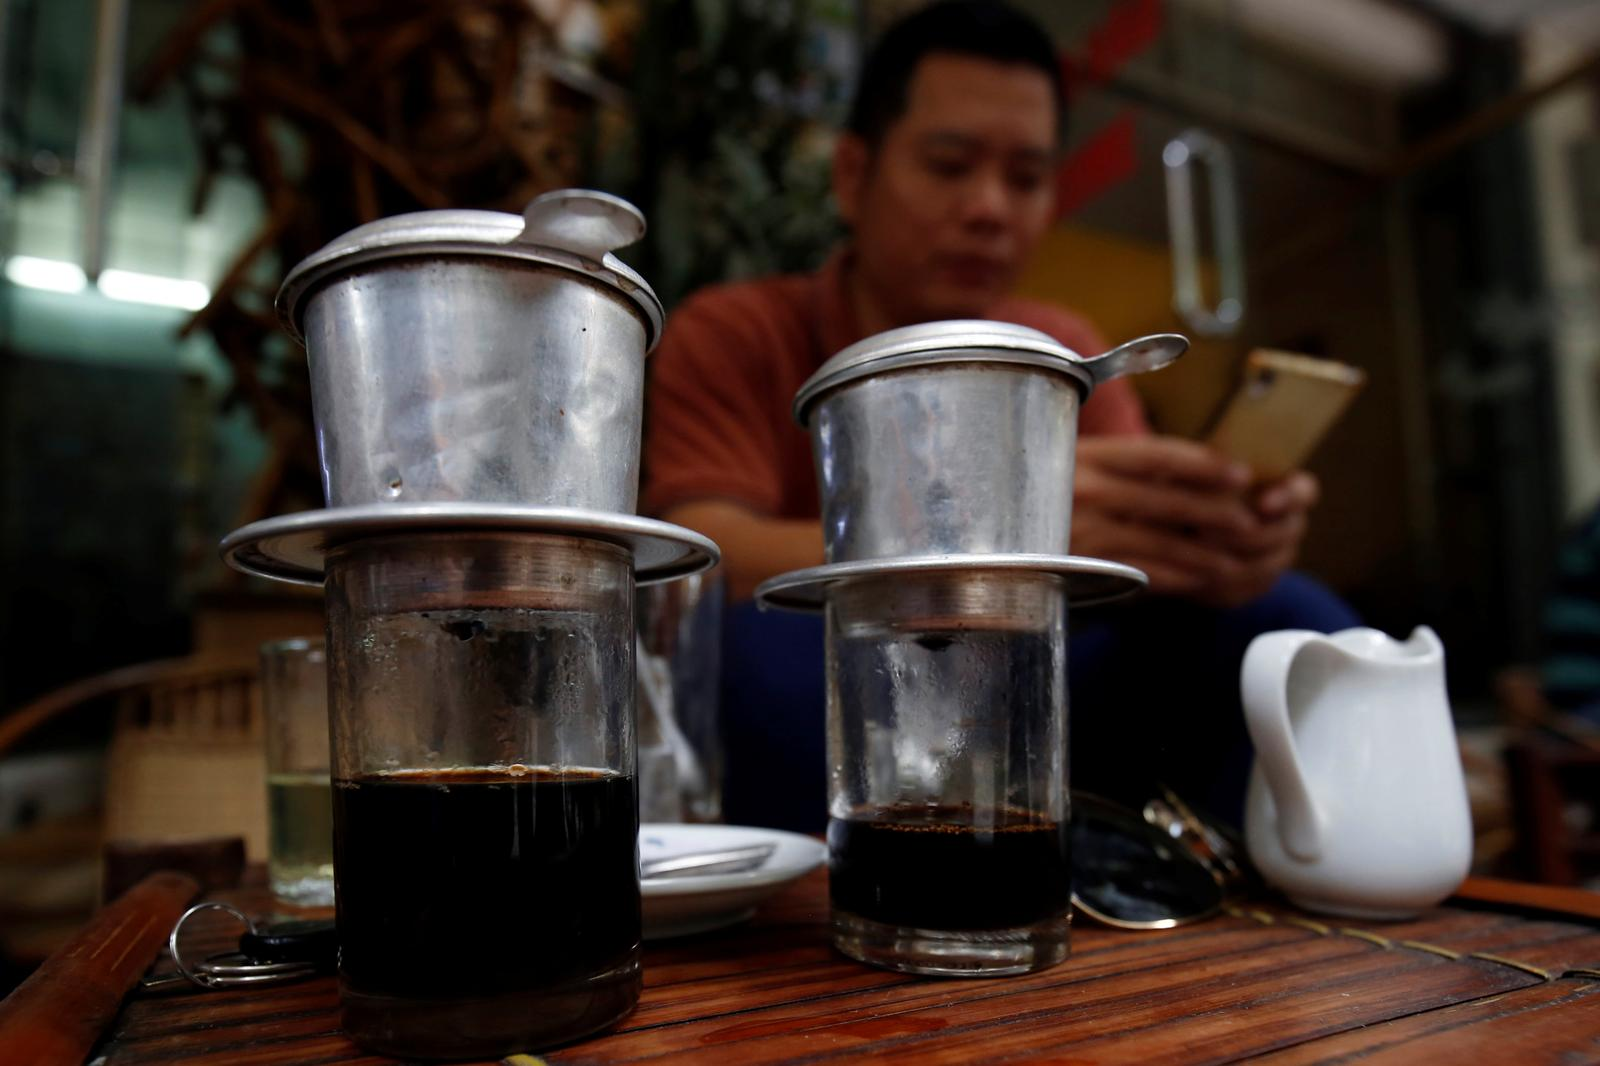 Asia Coffee-Prices pick up in Vietnam on global cues, tight supplies